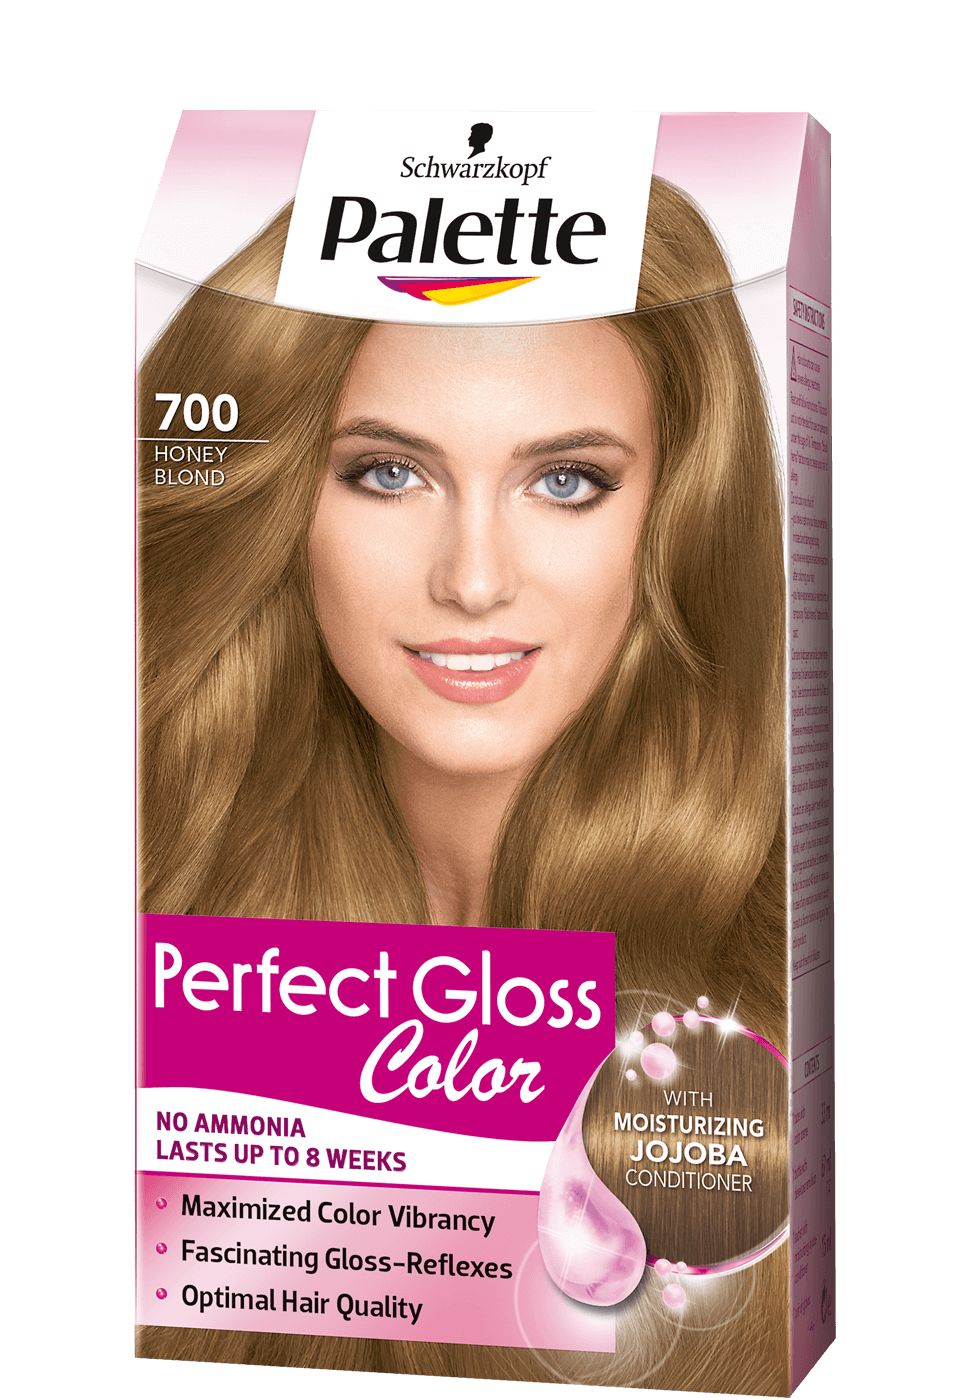 palette_com_gc_baseline_700_honey_blond_970x1400